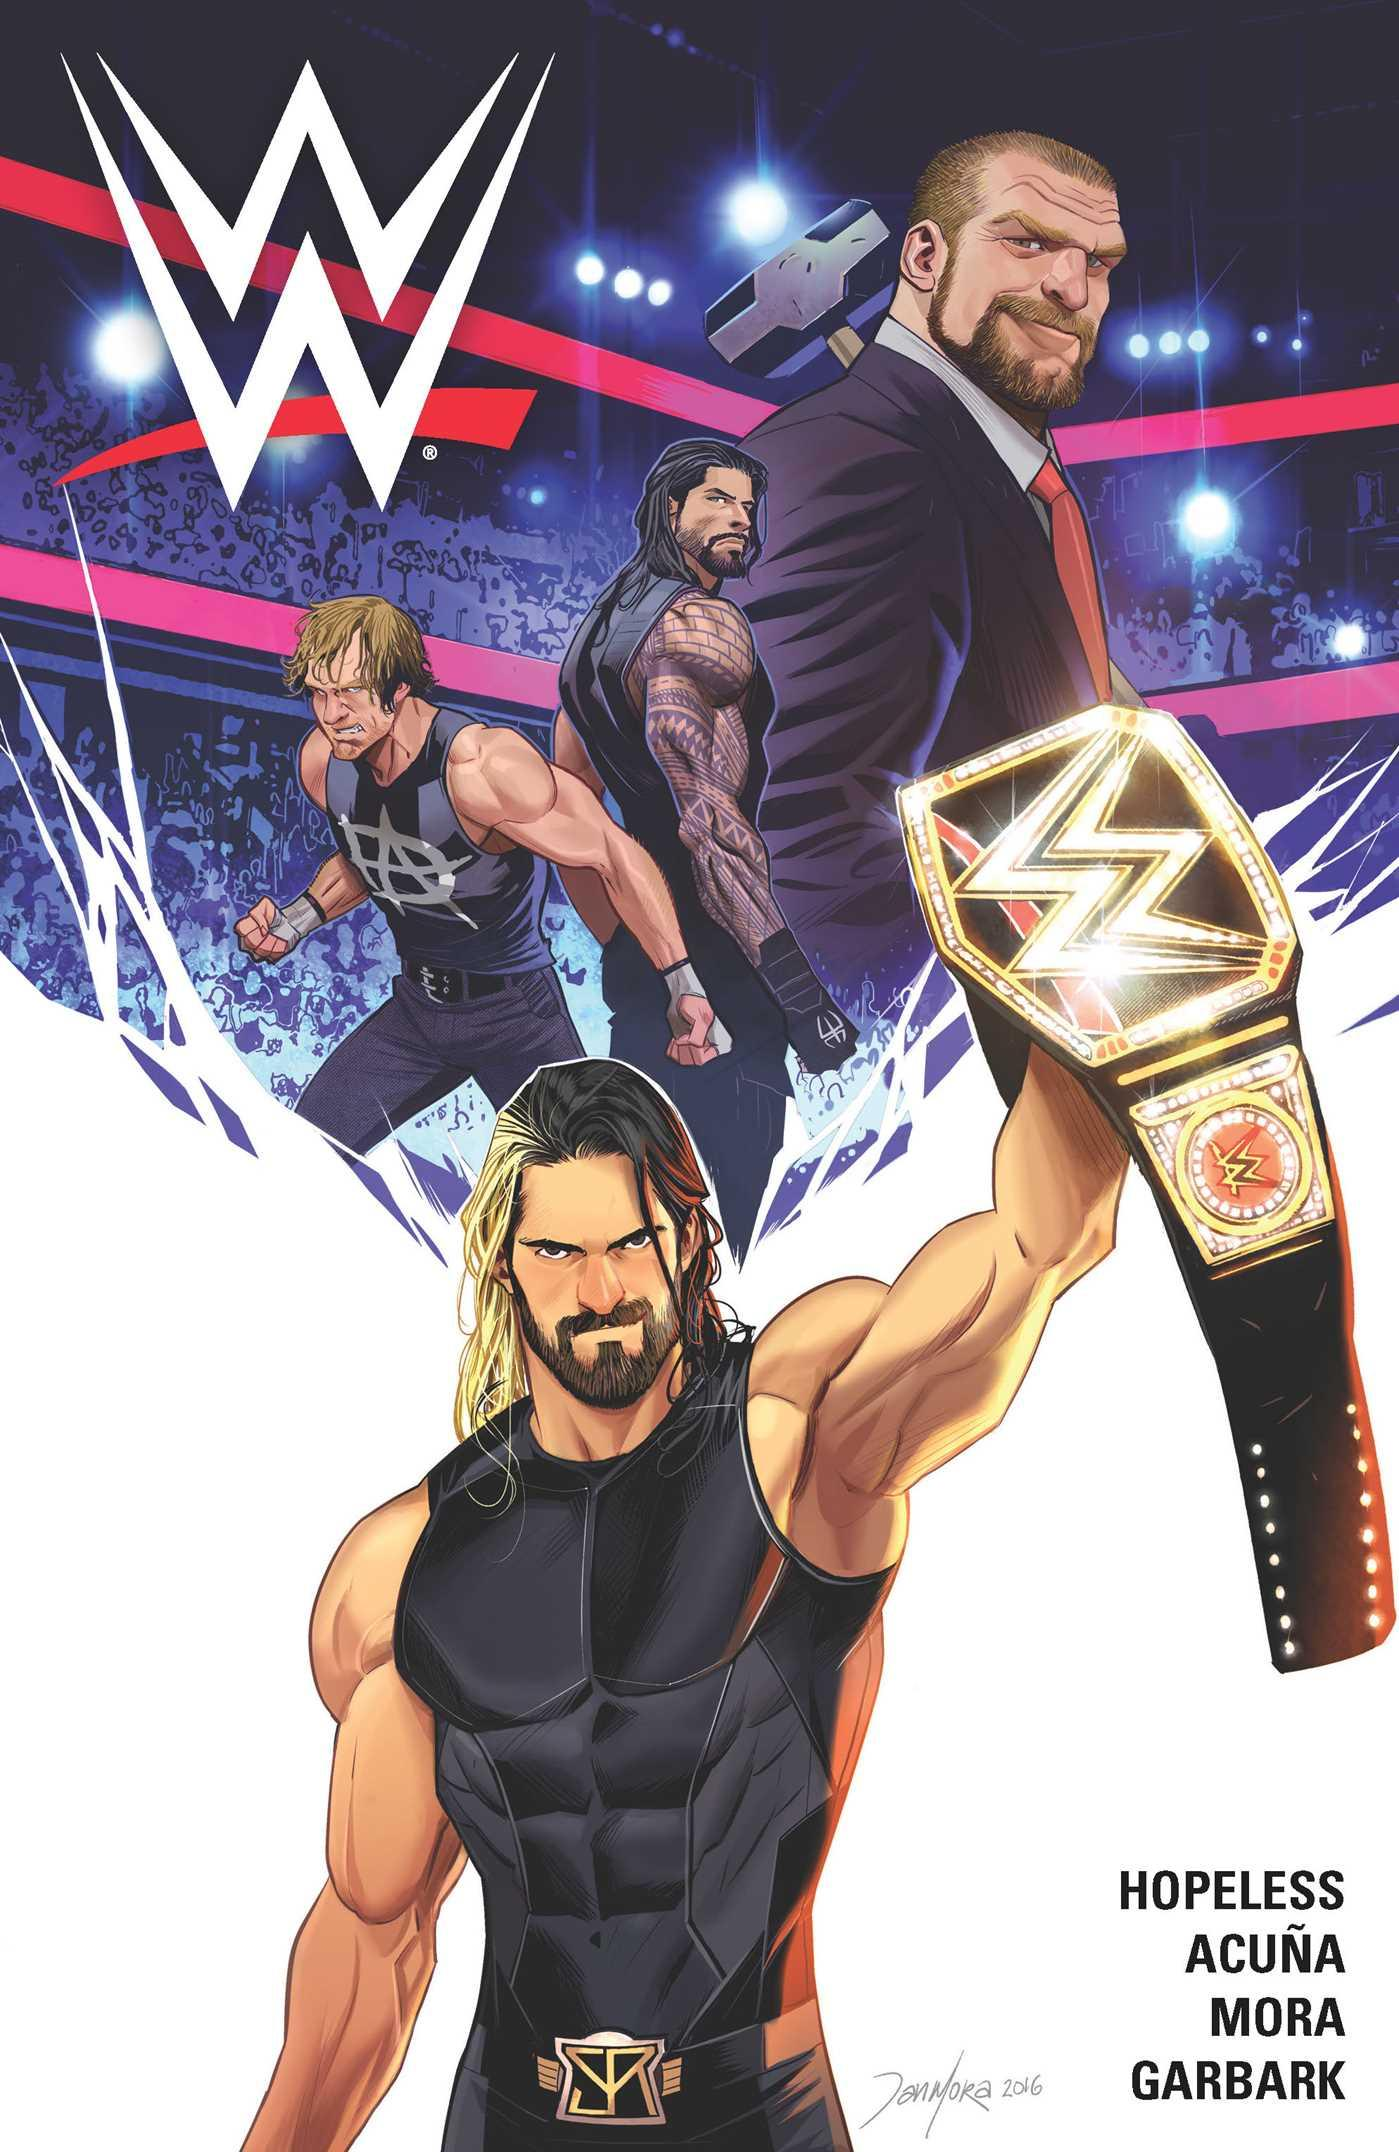 Wwe: WWE, Volume 1 (Paperback) by Boom Town